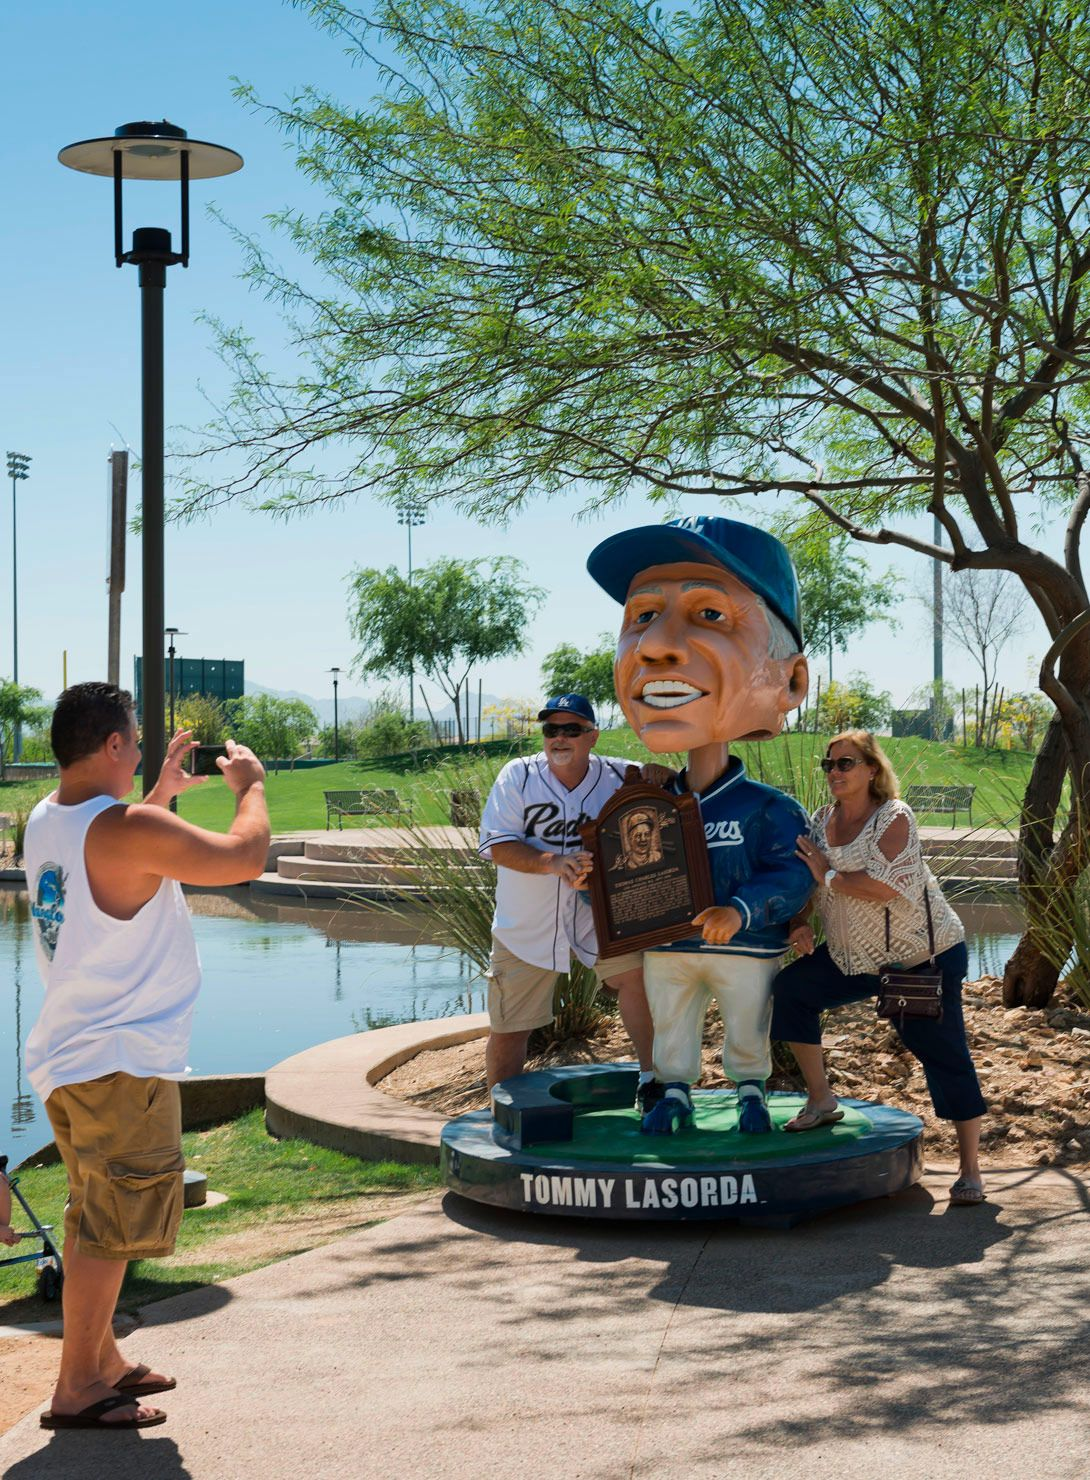 Wayfinding Signs For Camelback Ranch Dodger S Spring Training Facility Designed By Younts Design Inc Camelback Branding Design Environmental Graphic Design